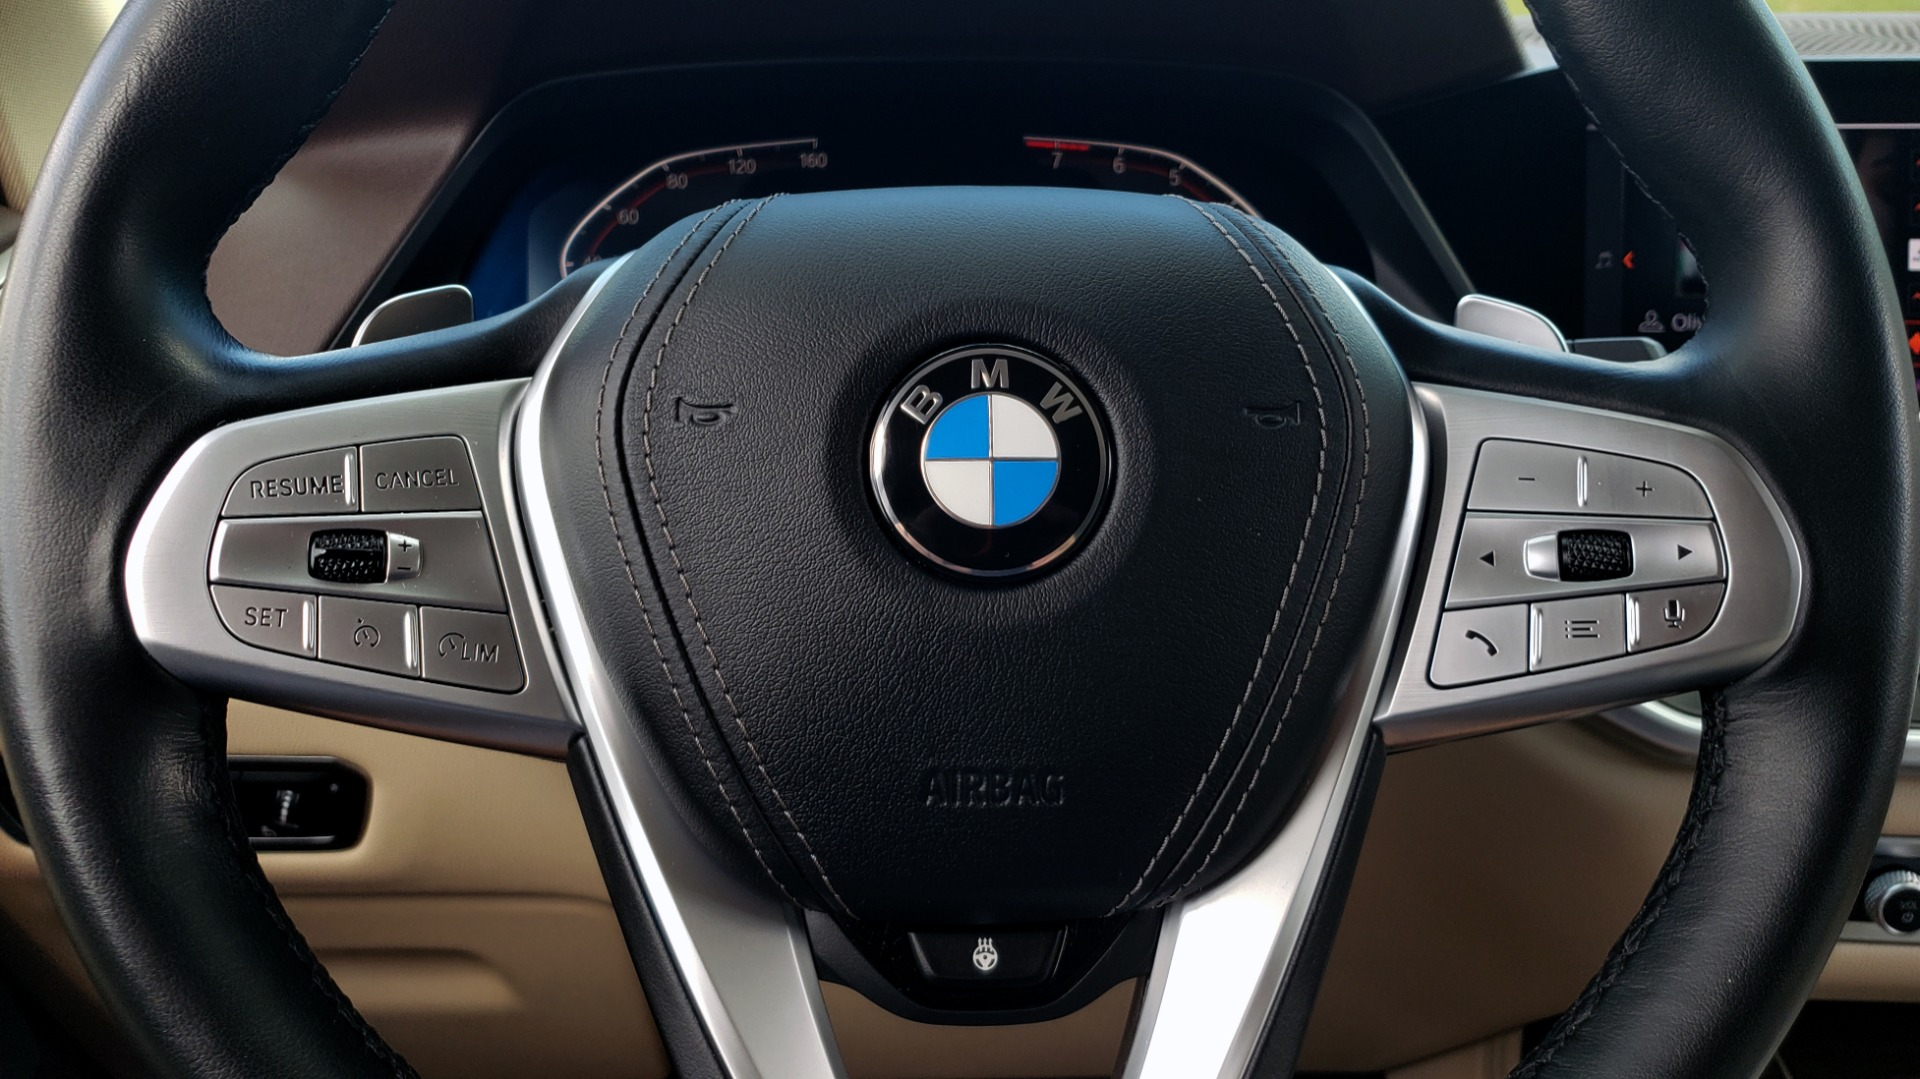 Used 2019 BMW X7 XDRIVE40I PREMIUM / LUXURY / COLD WEATHER / PARK ASST / PANORAMIC SKY / TOW for sale $75,999 at Formula Imports in Charlotte NC 28227 47